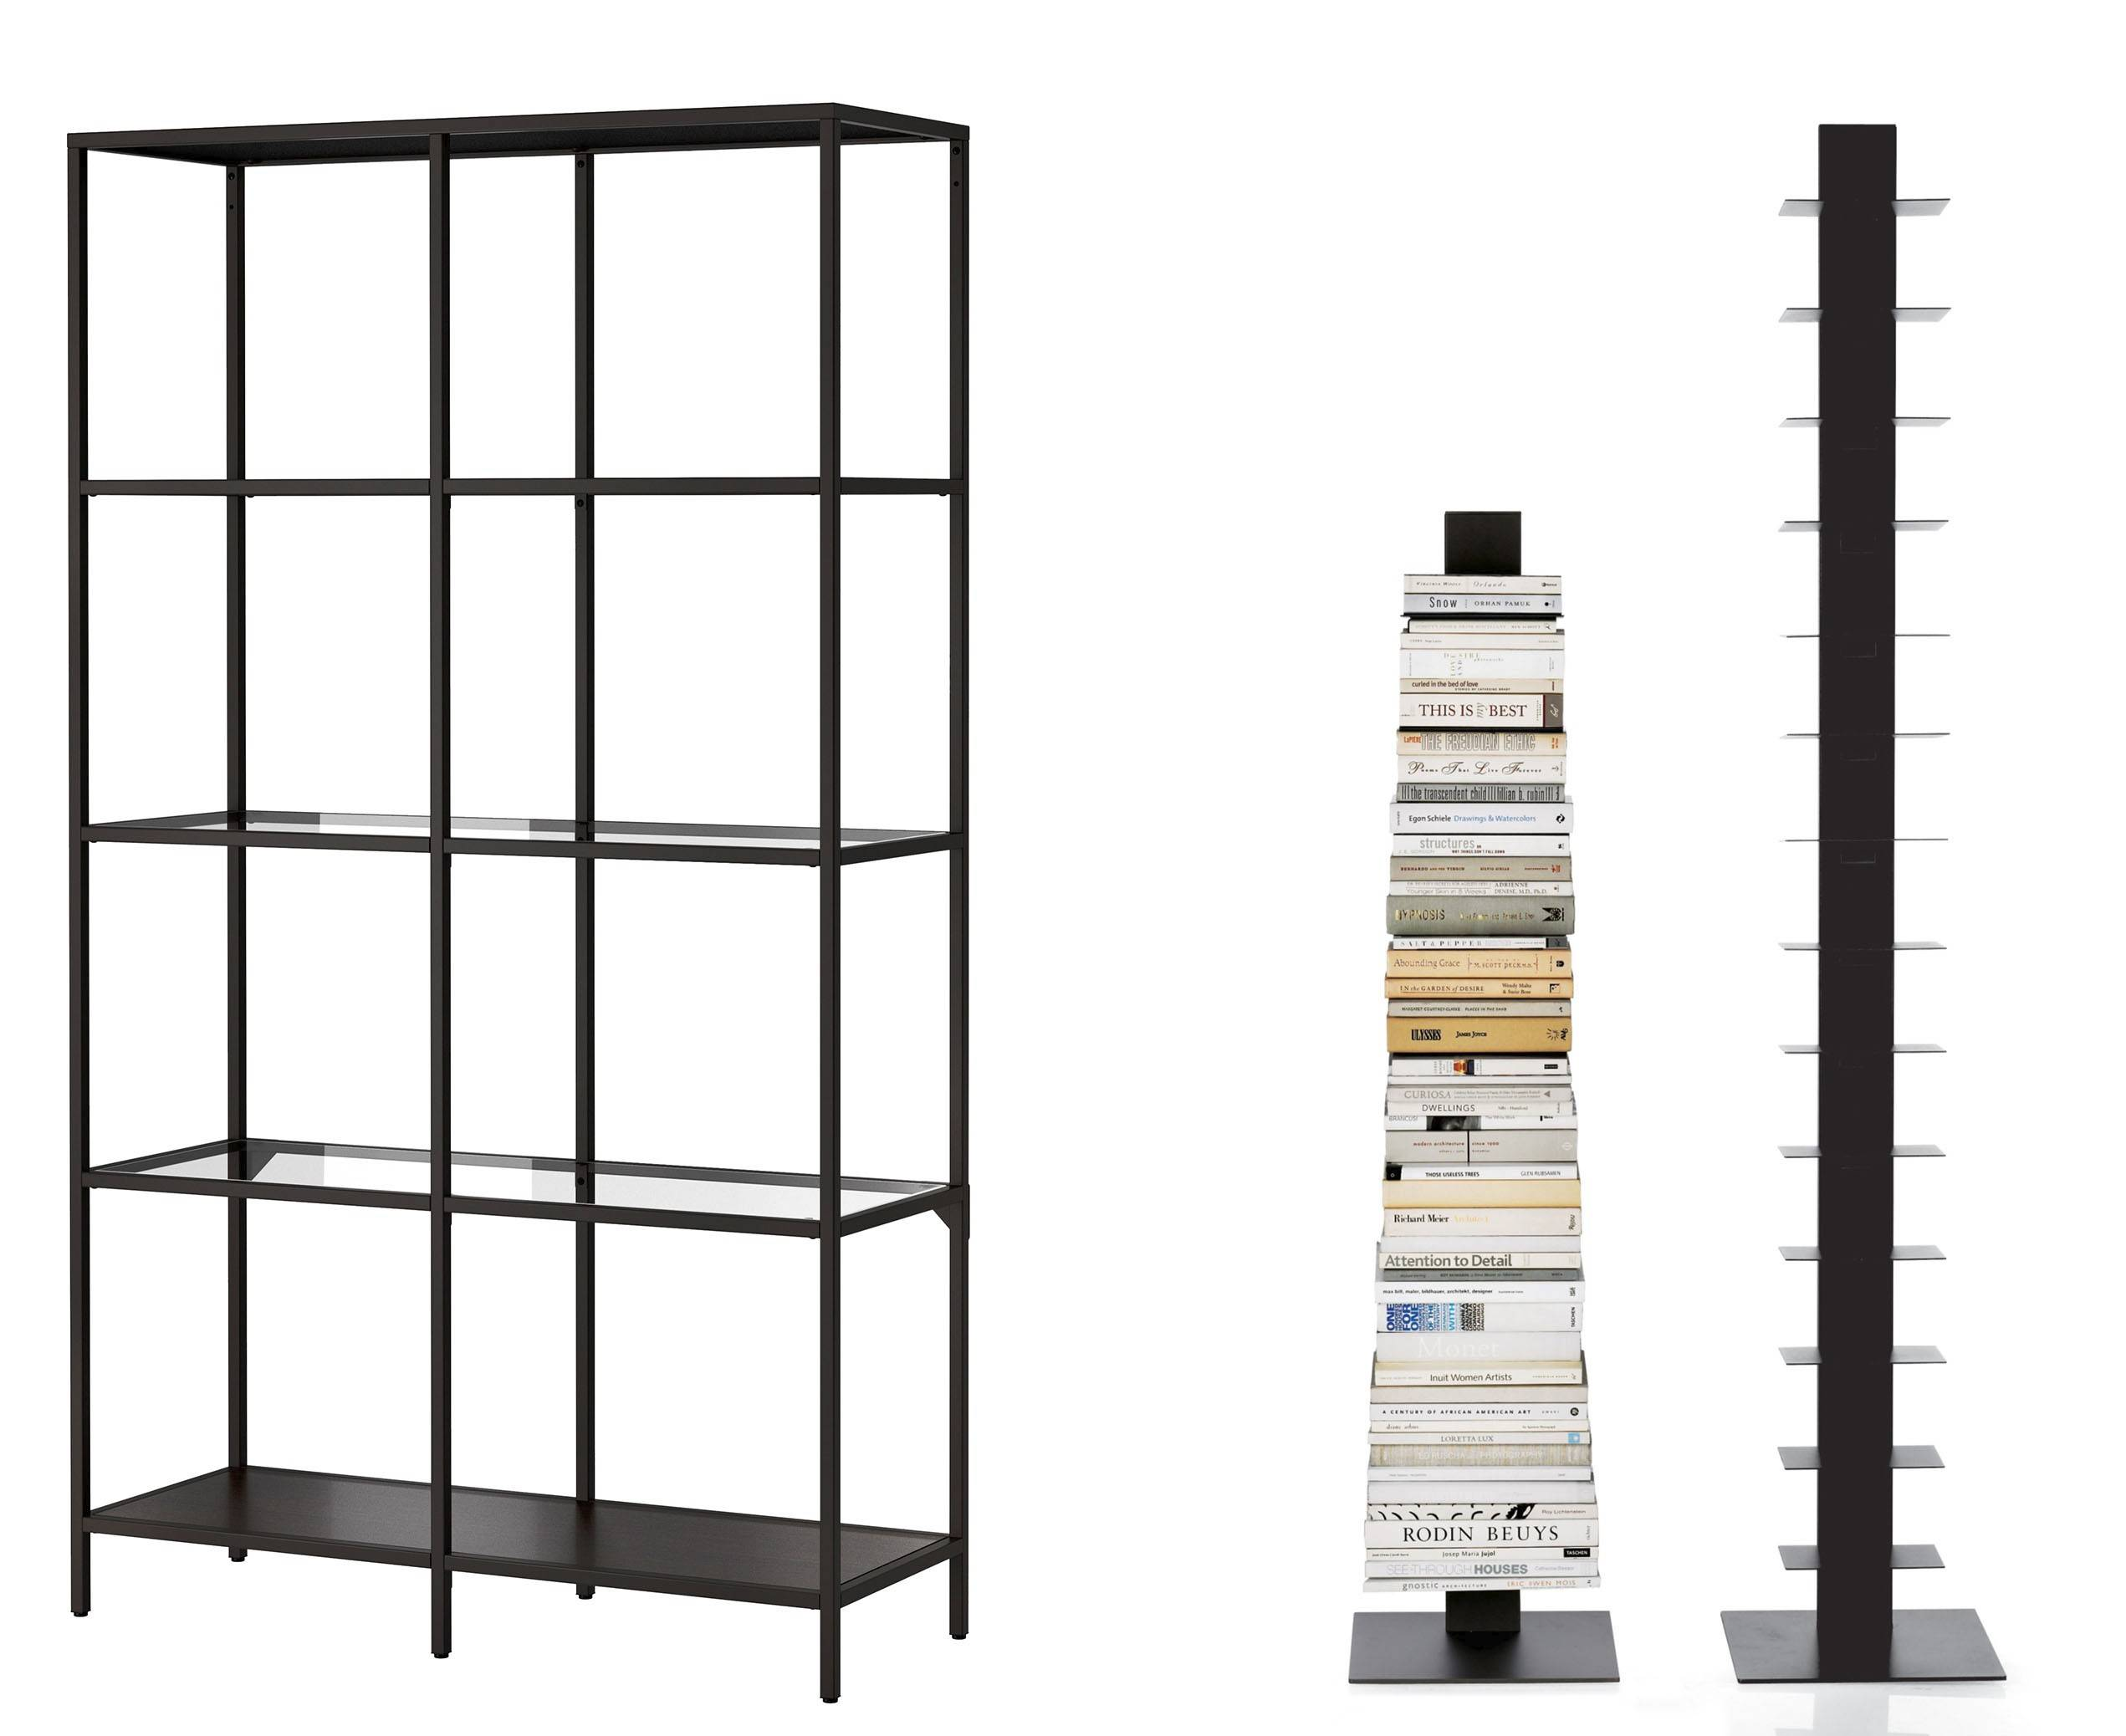 For book lovers on a budget, IKEA's Viitsjo is a hit among decorating bloggers (left); Sapien bookcases by Bruno Rainaldi, which hold books vertically, are especially good for corners.